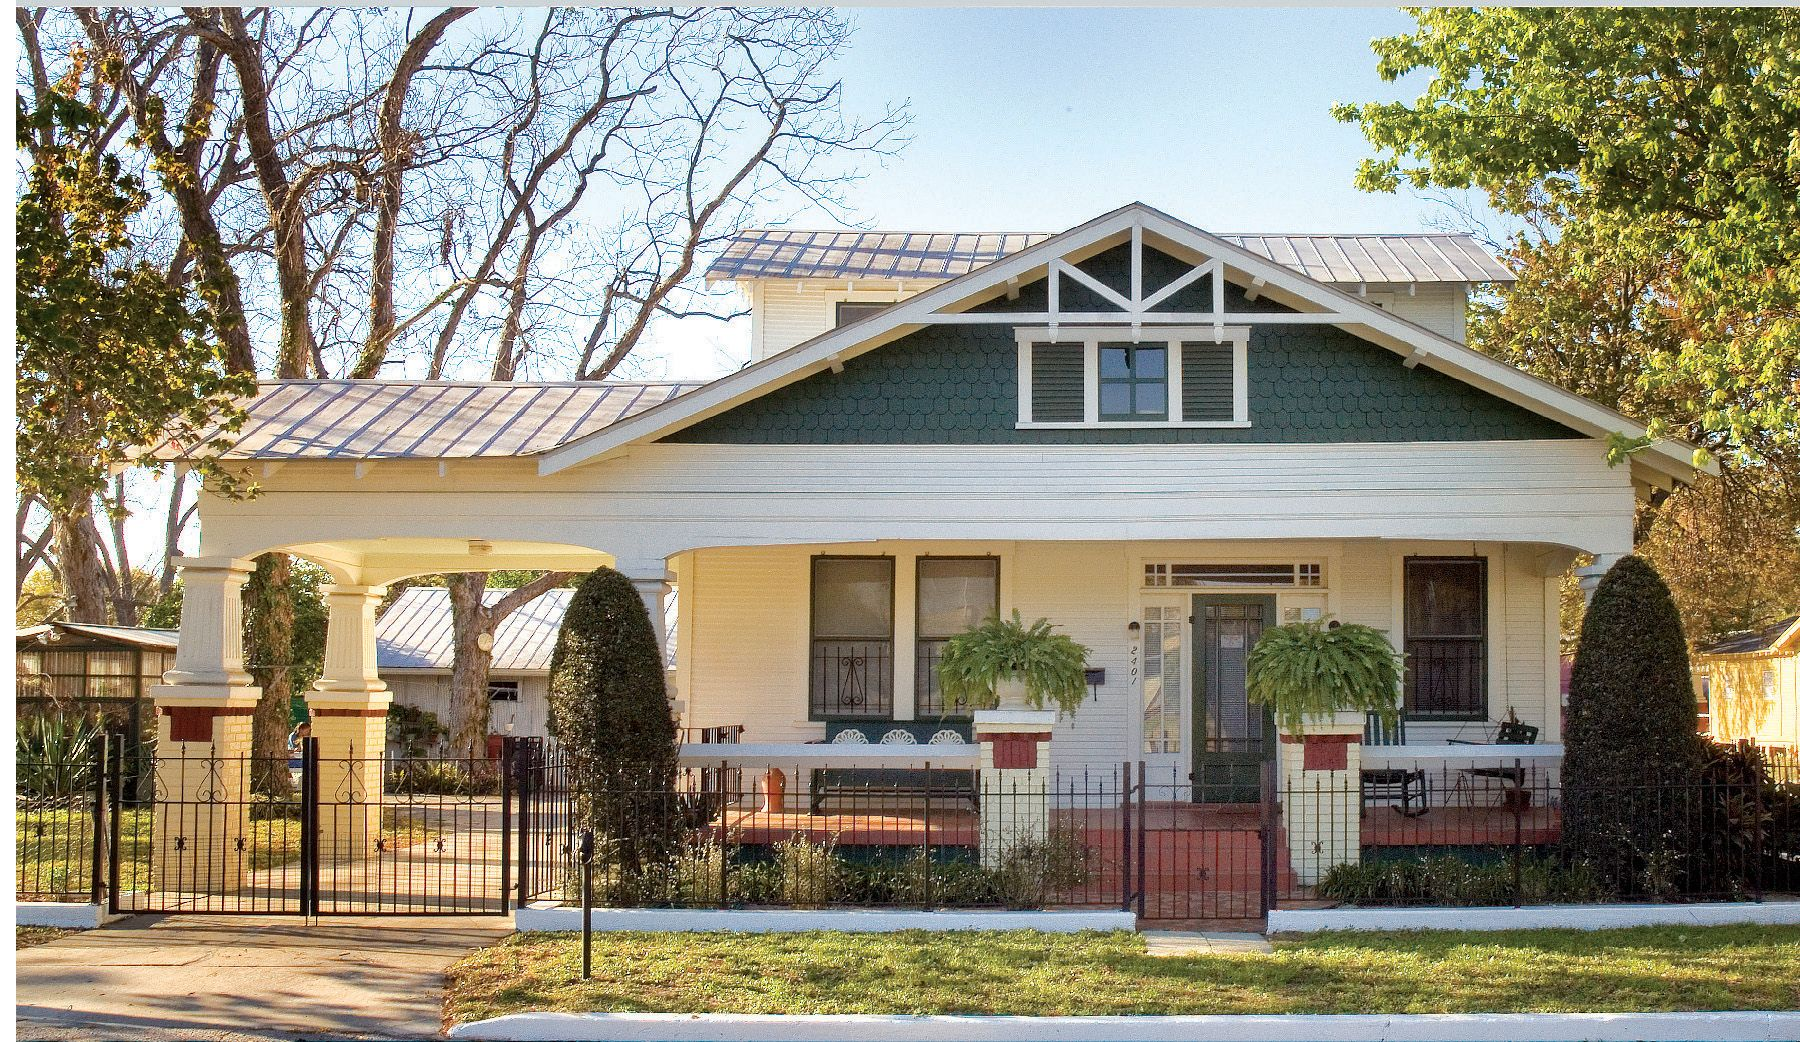 Tampa from American Bungalow 1900 Pinterest Bungalow